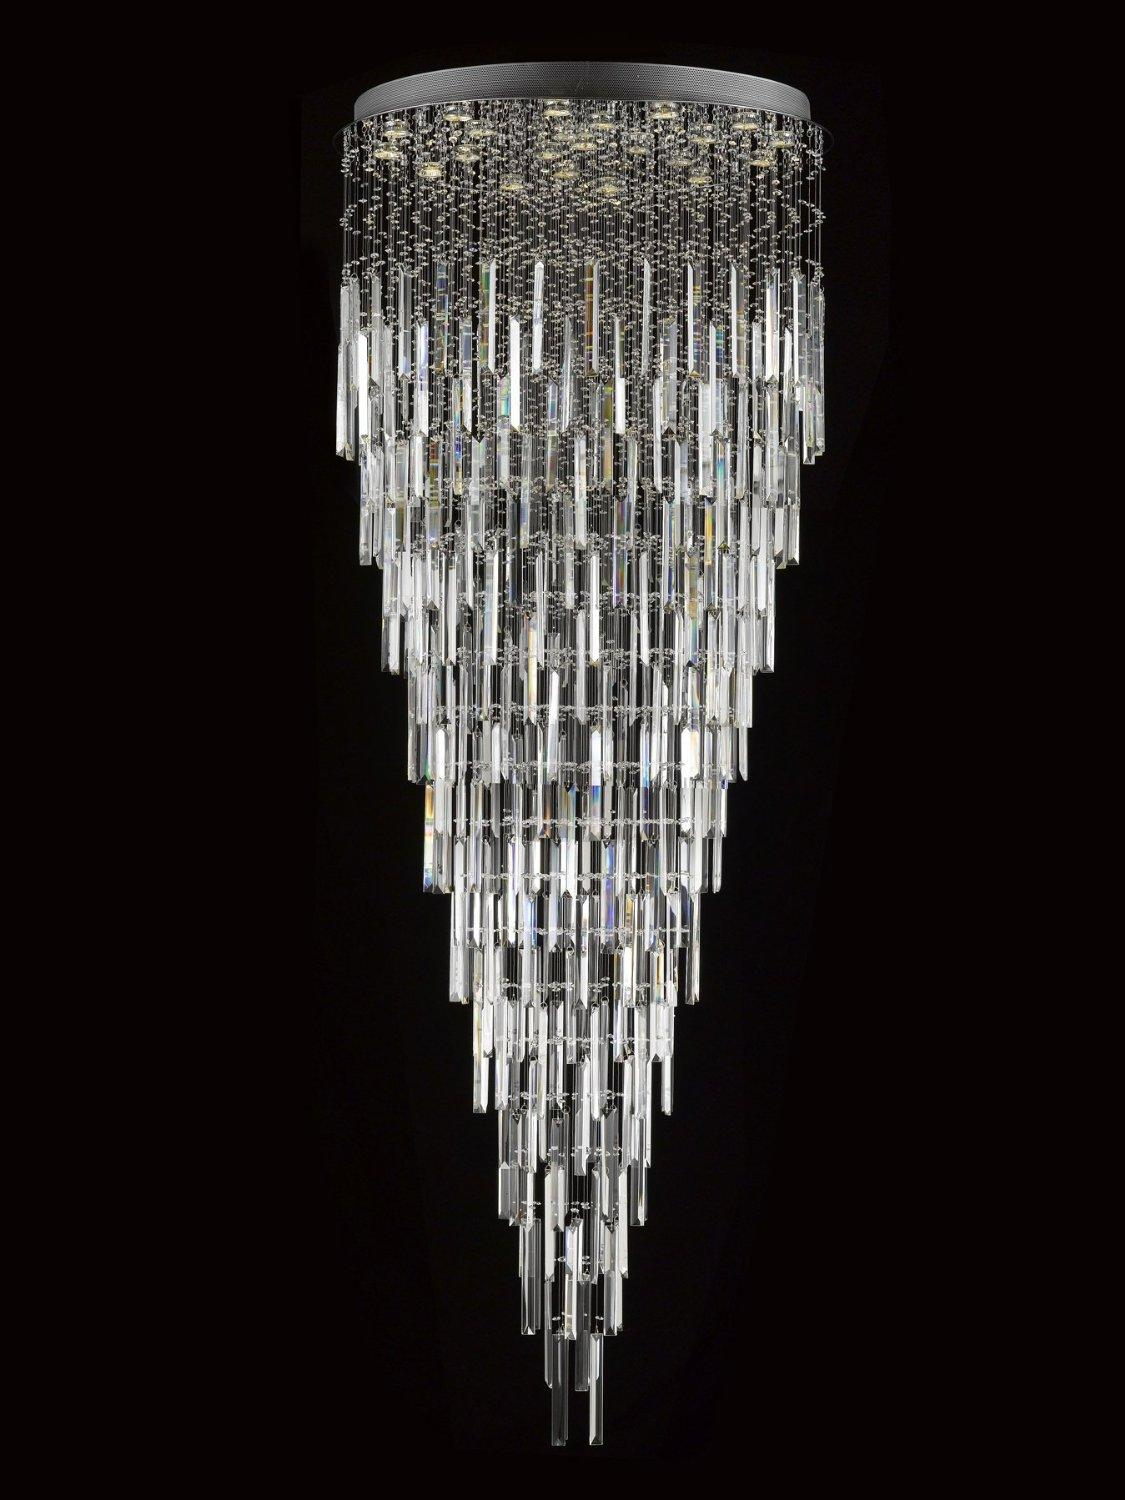 Modern Contemporary Rain Drop Chandelier Lighting With Faceted Crystal